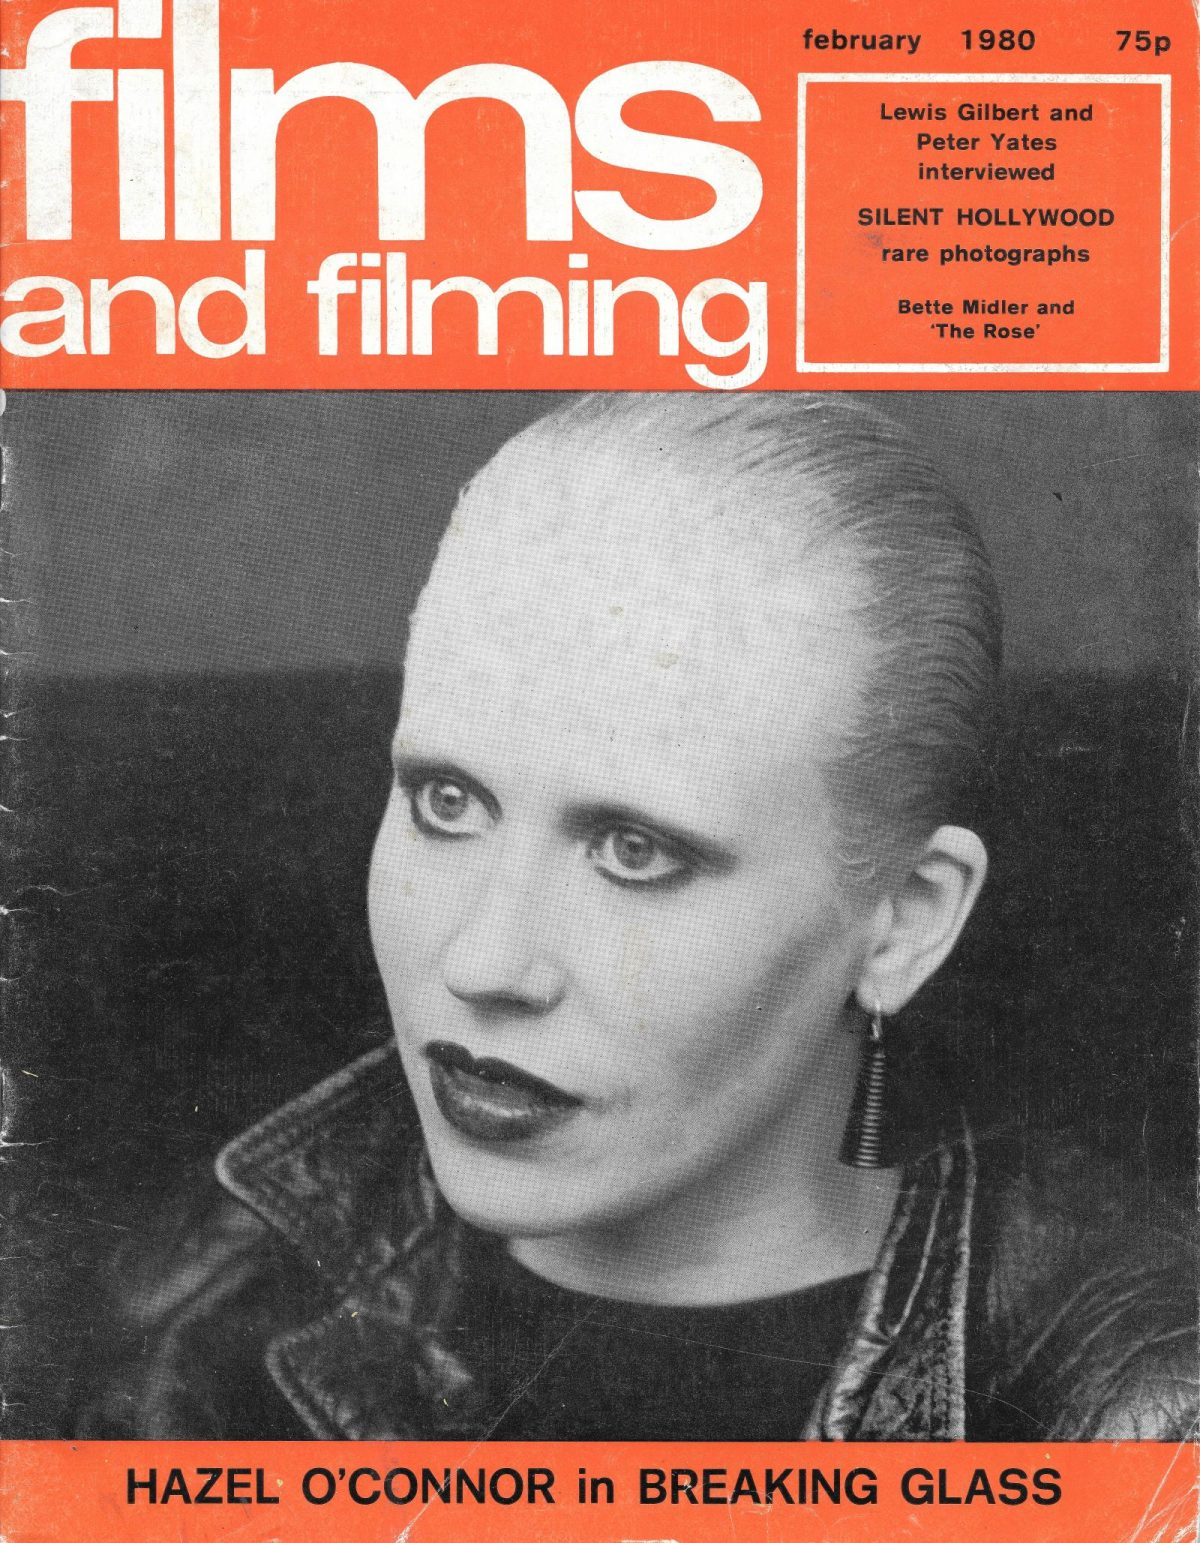 Films & Filming, film, magazines, Hazel O'Connor, Broken Glass, 1980s